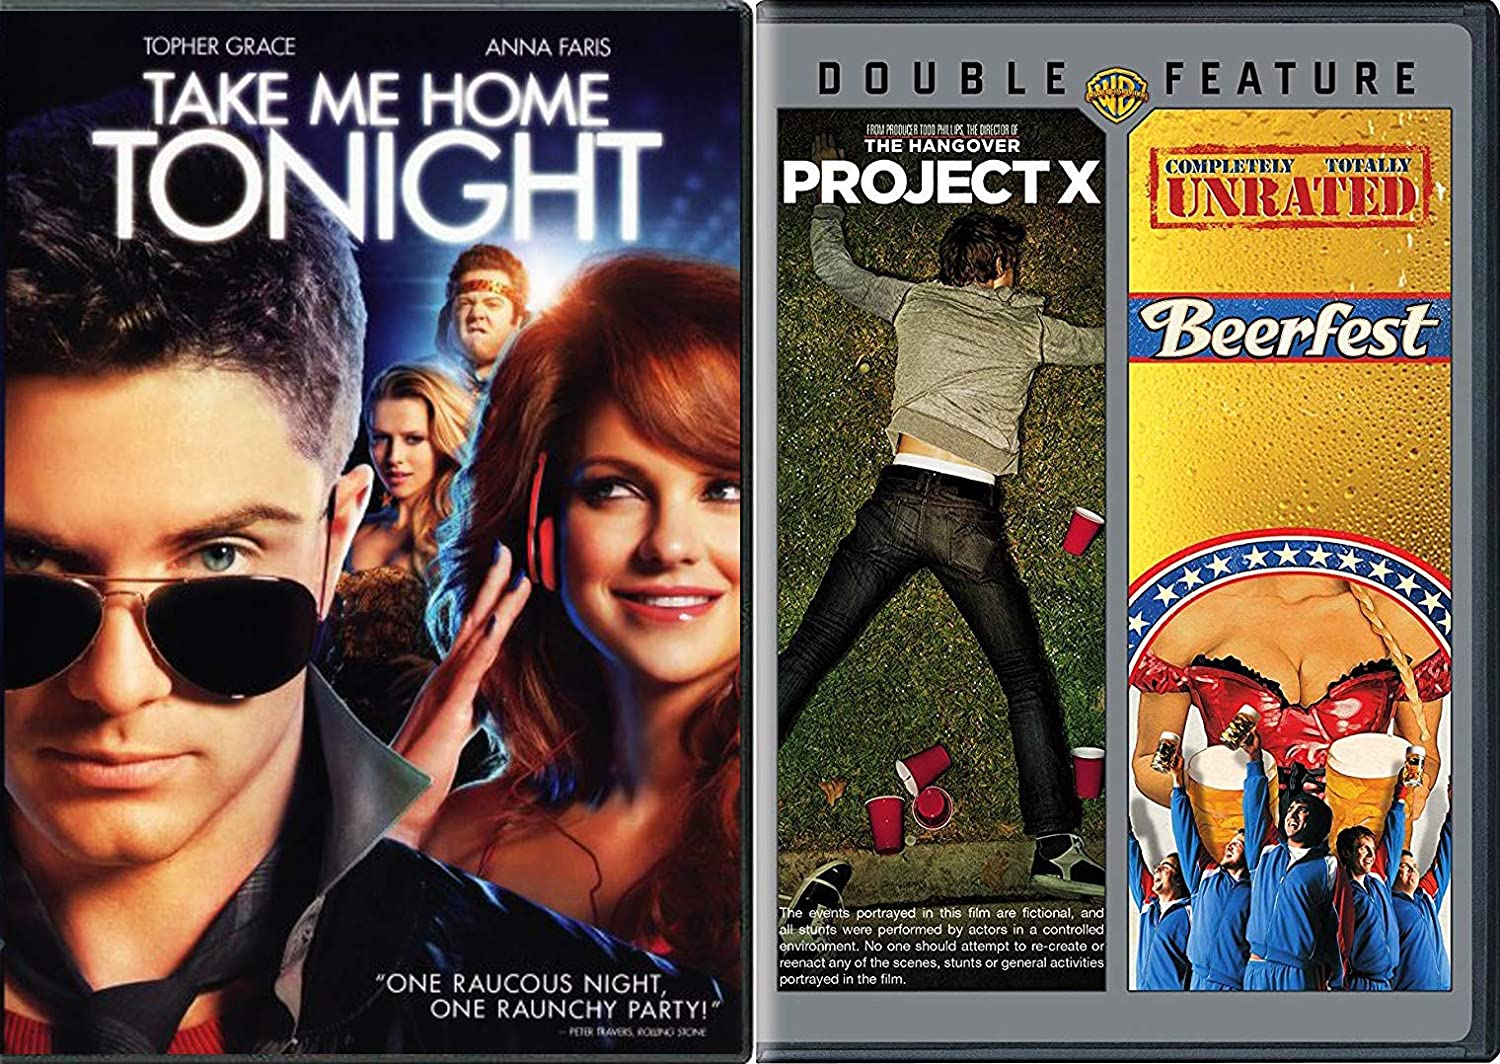 Raunchy Party Night Comedy Collection - Take me Home Tonight + Project X & Beerfest -DVD Triple Feature Bundle